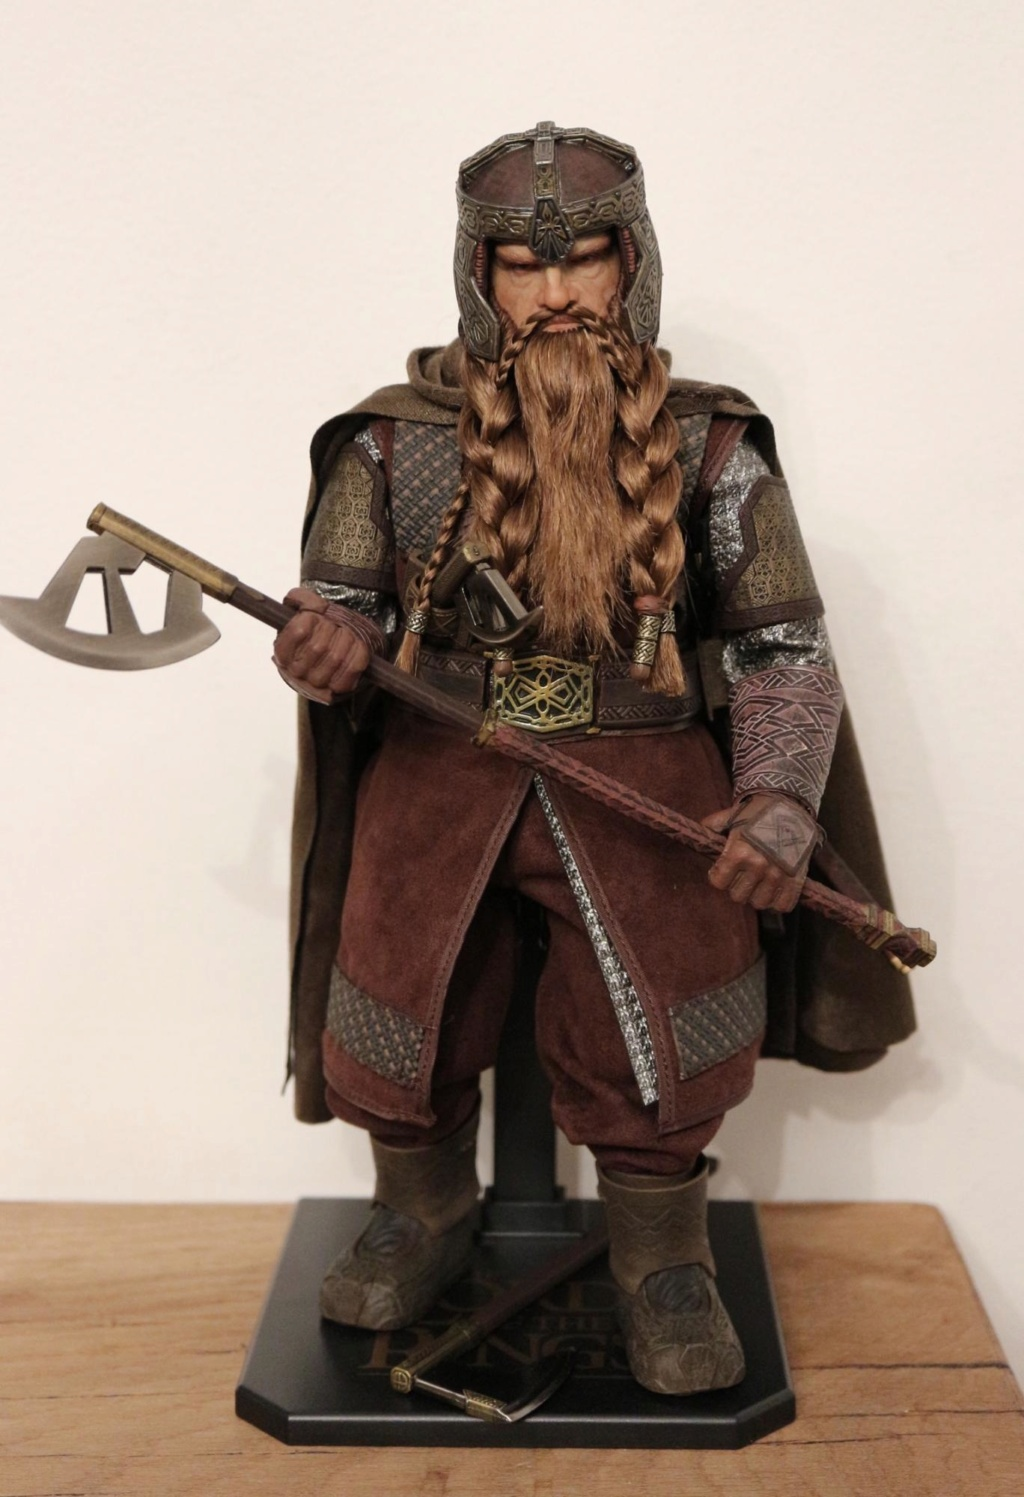 NEW PRODUCT: Asmus Toys The Lord of the Rings Series: Gimli (LOTR018) Timeme10